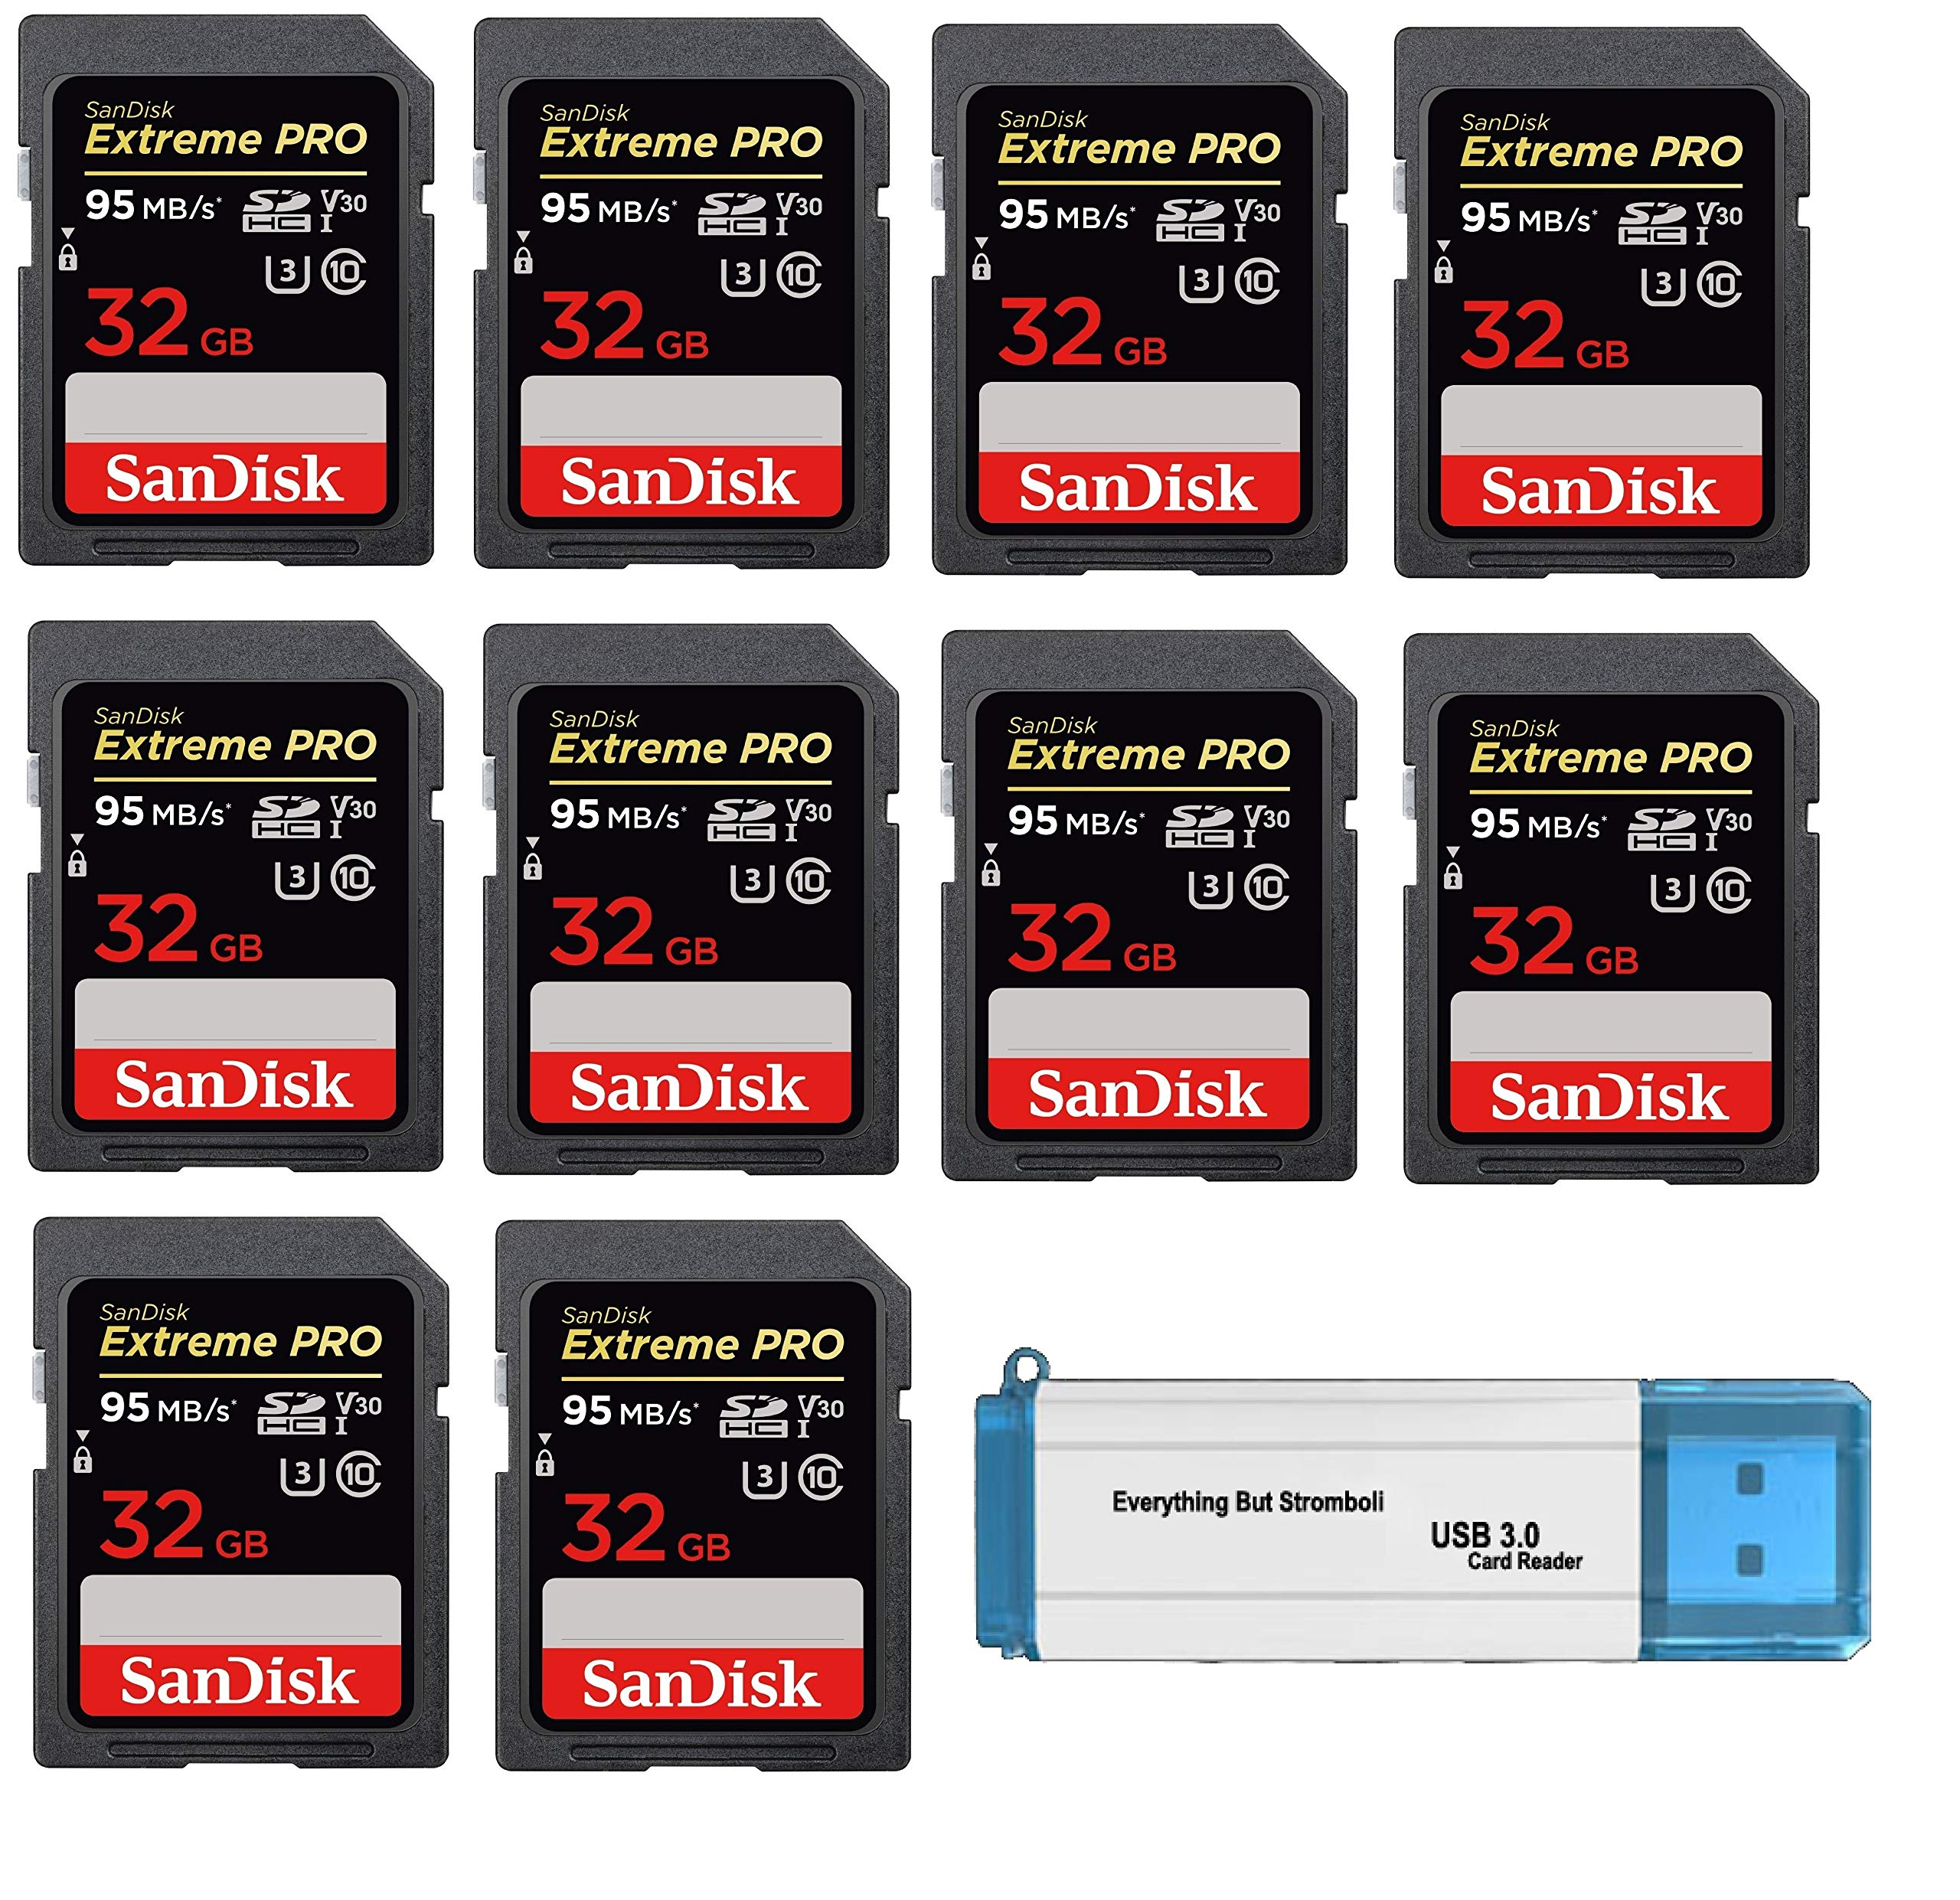 SanDisk 32GB (Ten Pack) SD HC Extreme Pro Memory Card for Digital DSLR Camera SDHC 4K V30 UHS-I (SDSDXXG-032G-GN4IN) with Everything But Stromboli (TM) 3.0 SD/TF Reader by SanDisk